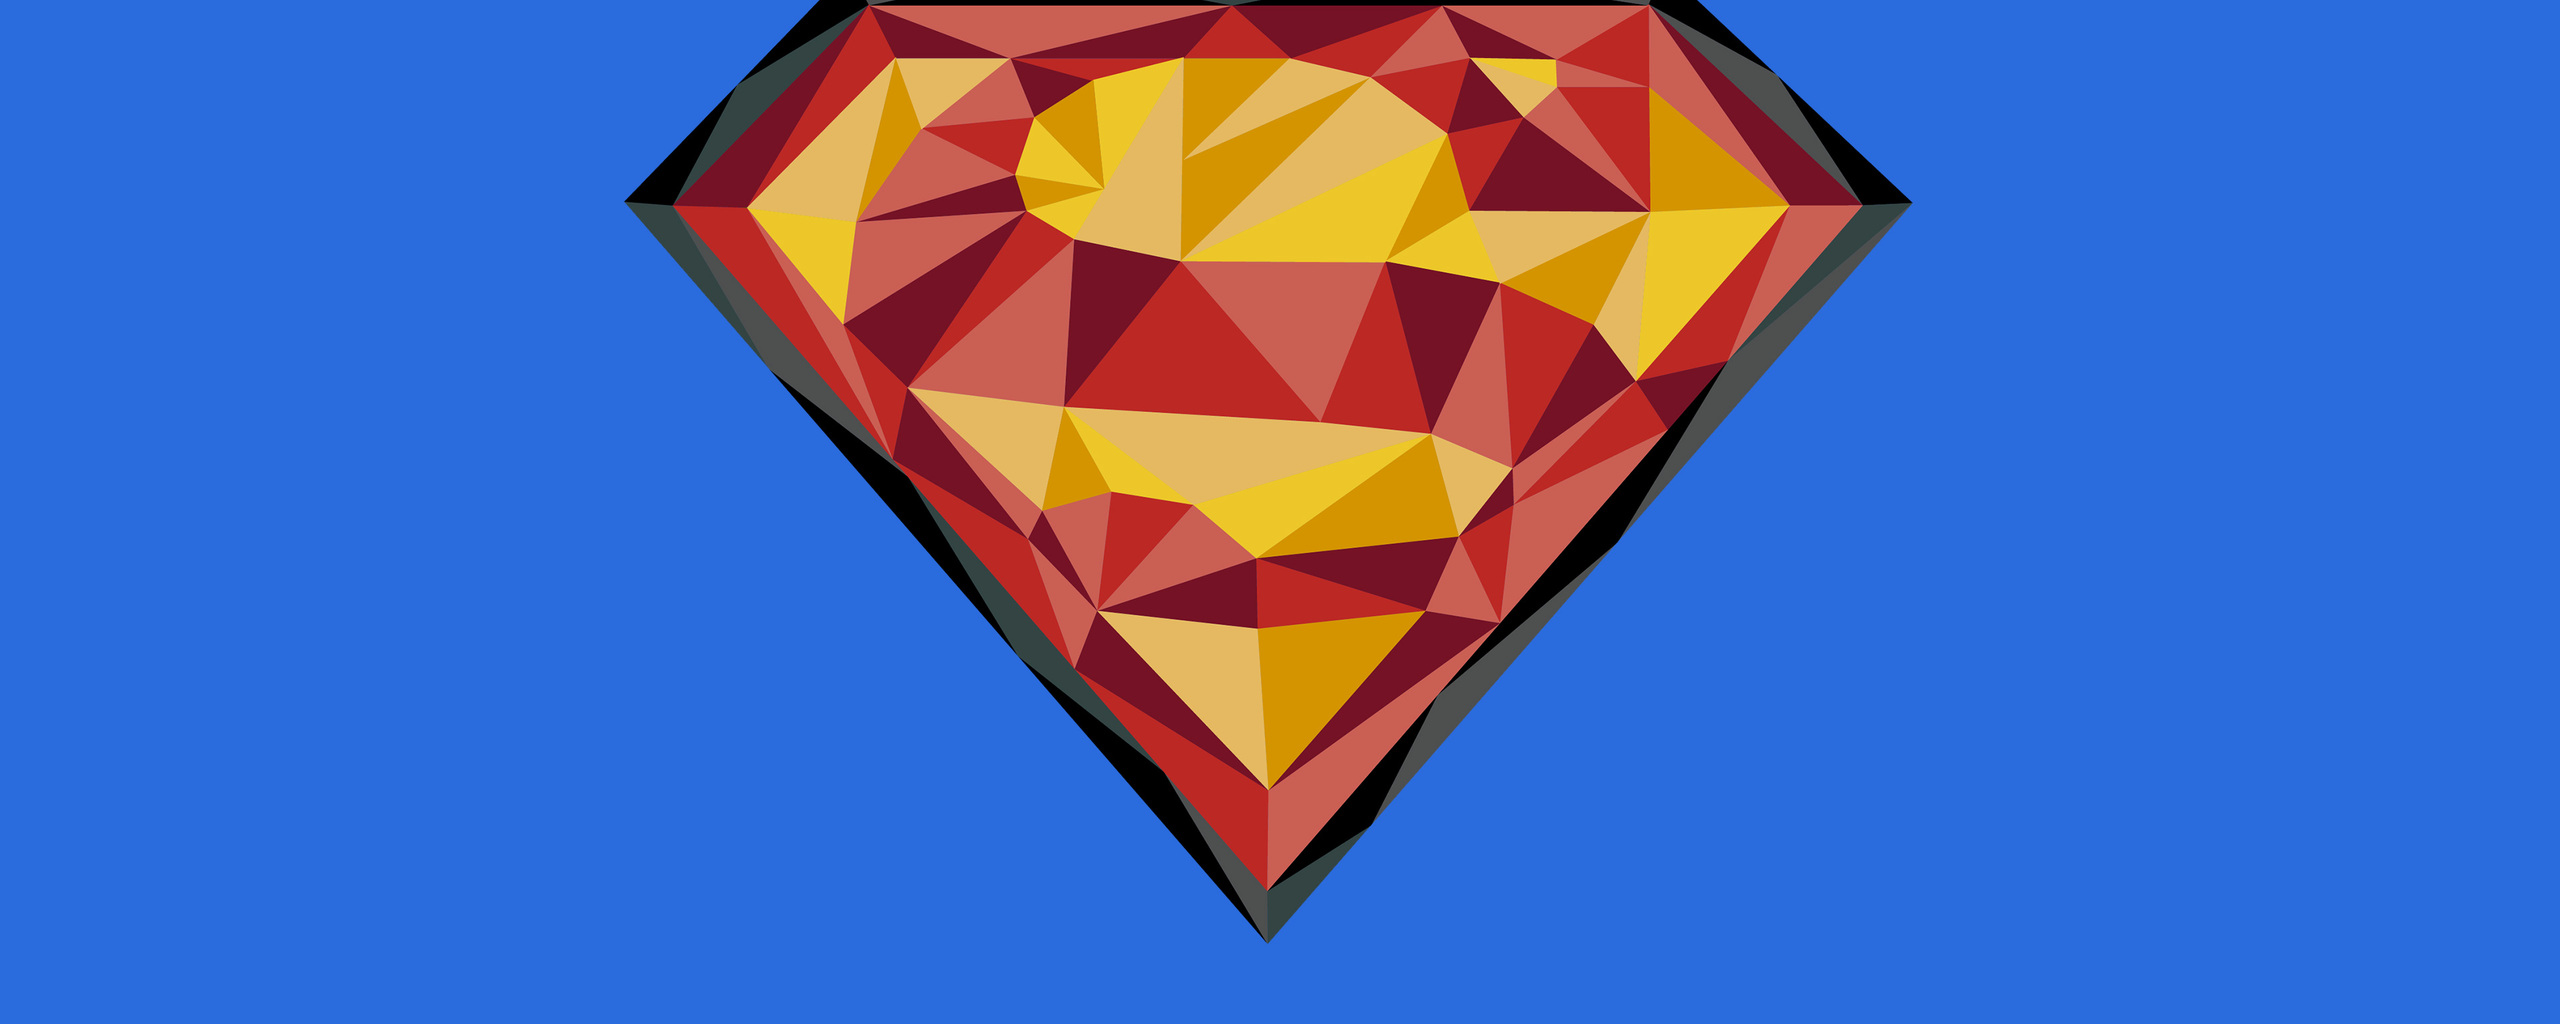 superman-logo-4k-art-gd.jpg